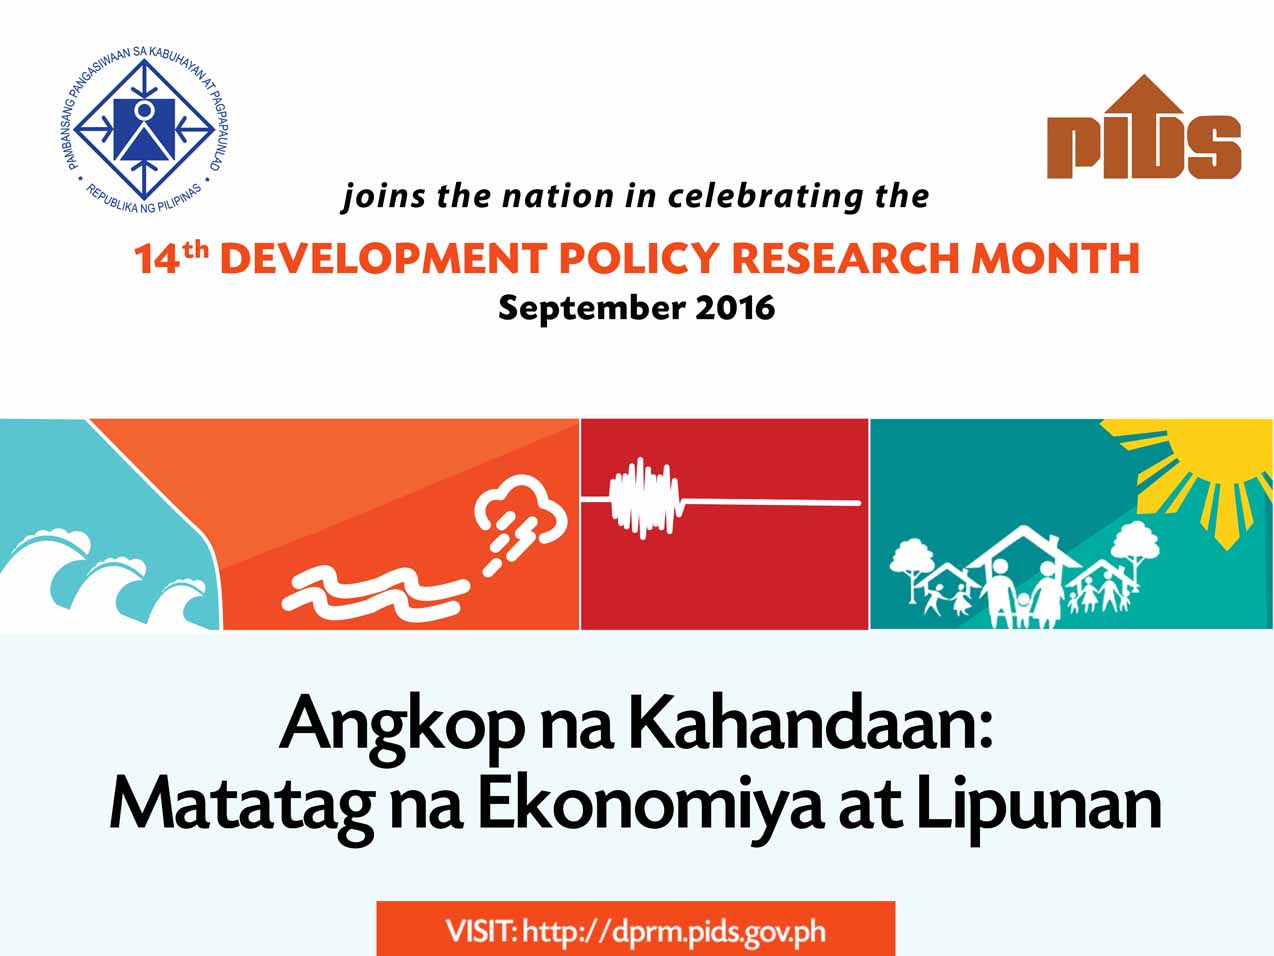 14th Development Research Policy Month